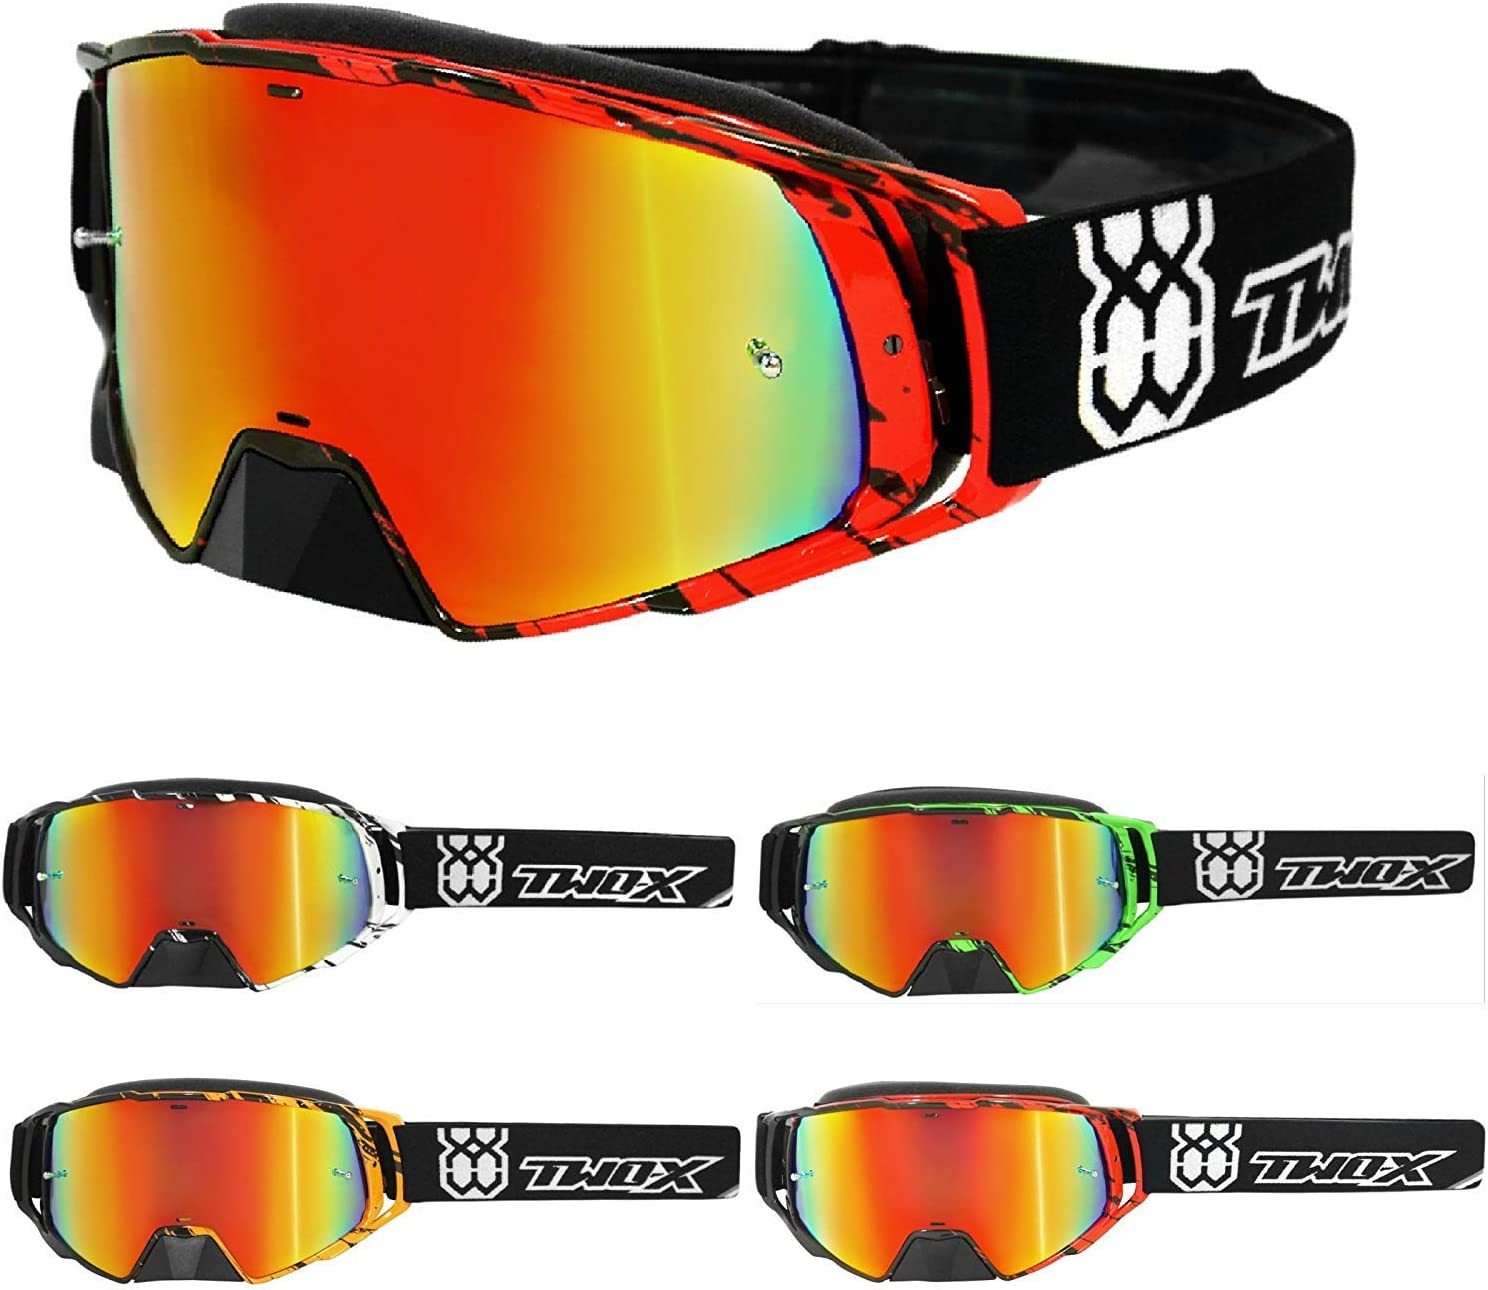 TWO-X Rocket Crush Crossbrille MX Enduro Lunettes Motocross iridium miroir